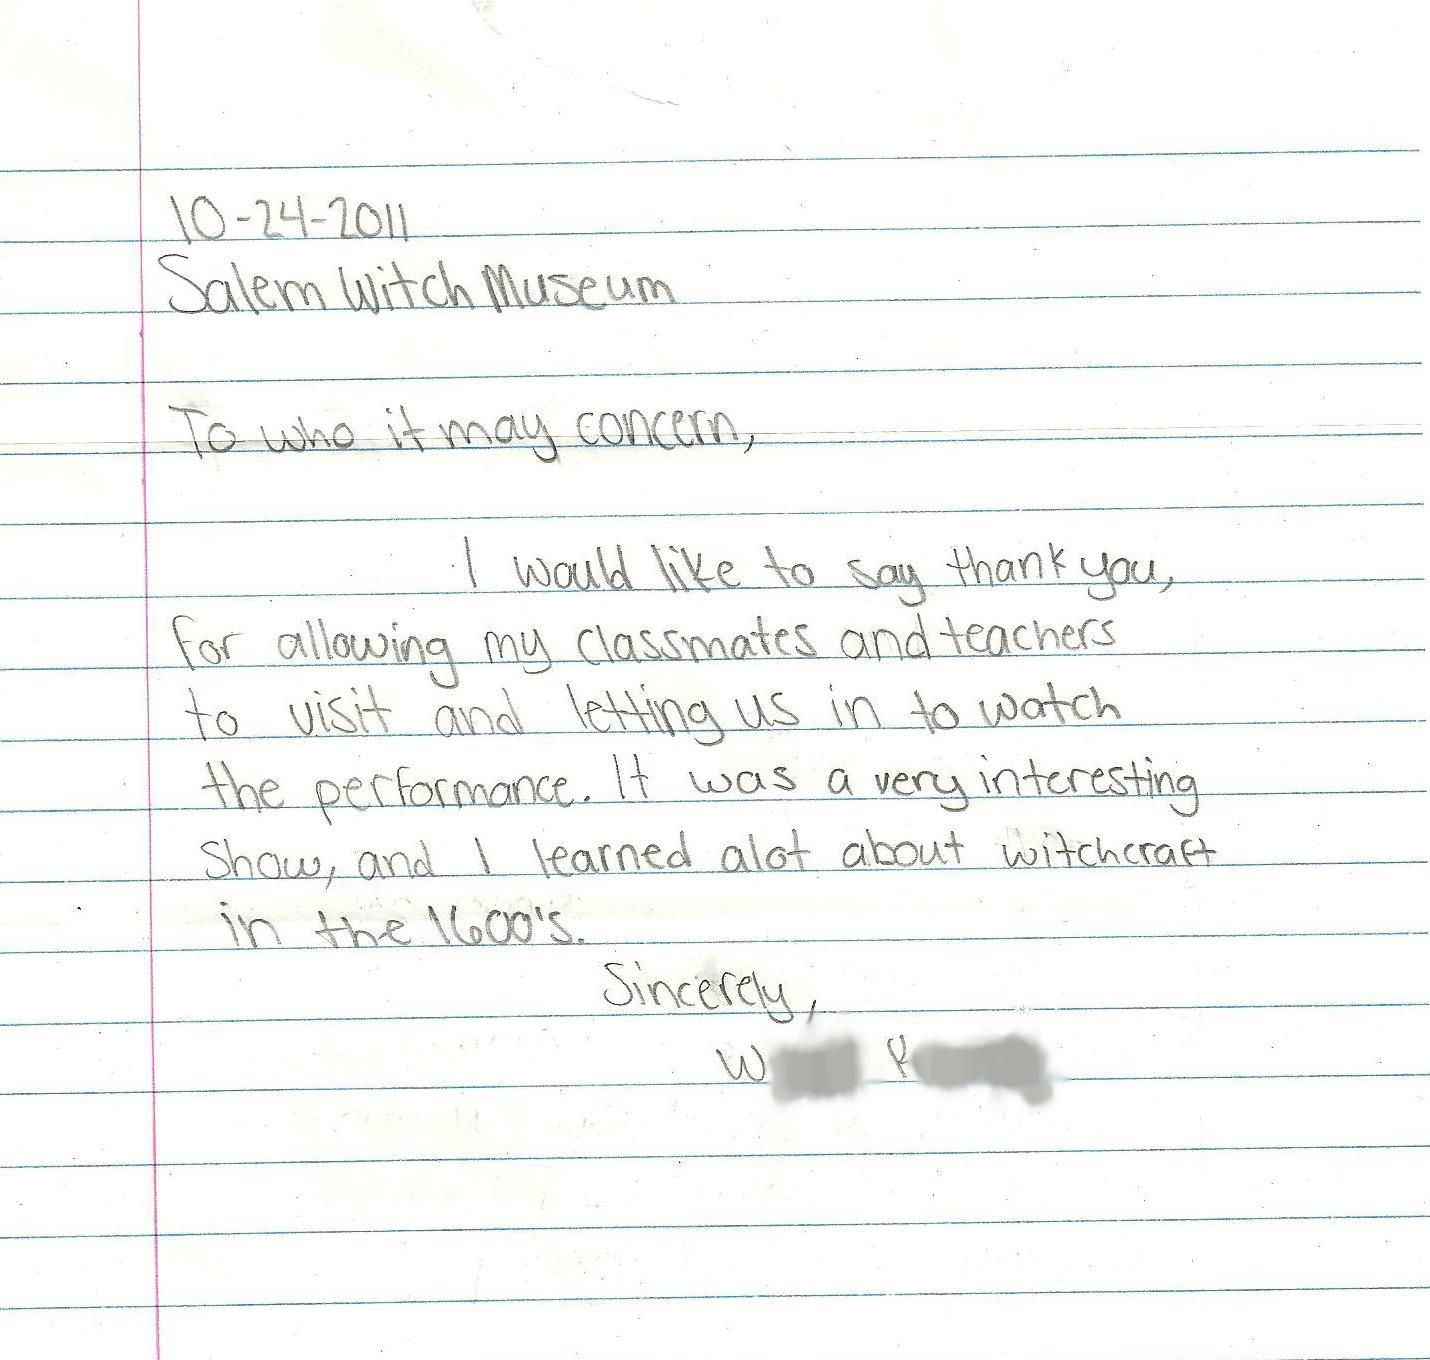 Student Thank You Letter | Behind the Scenes | Pinterest | Letter ...